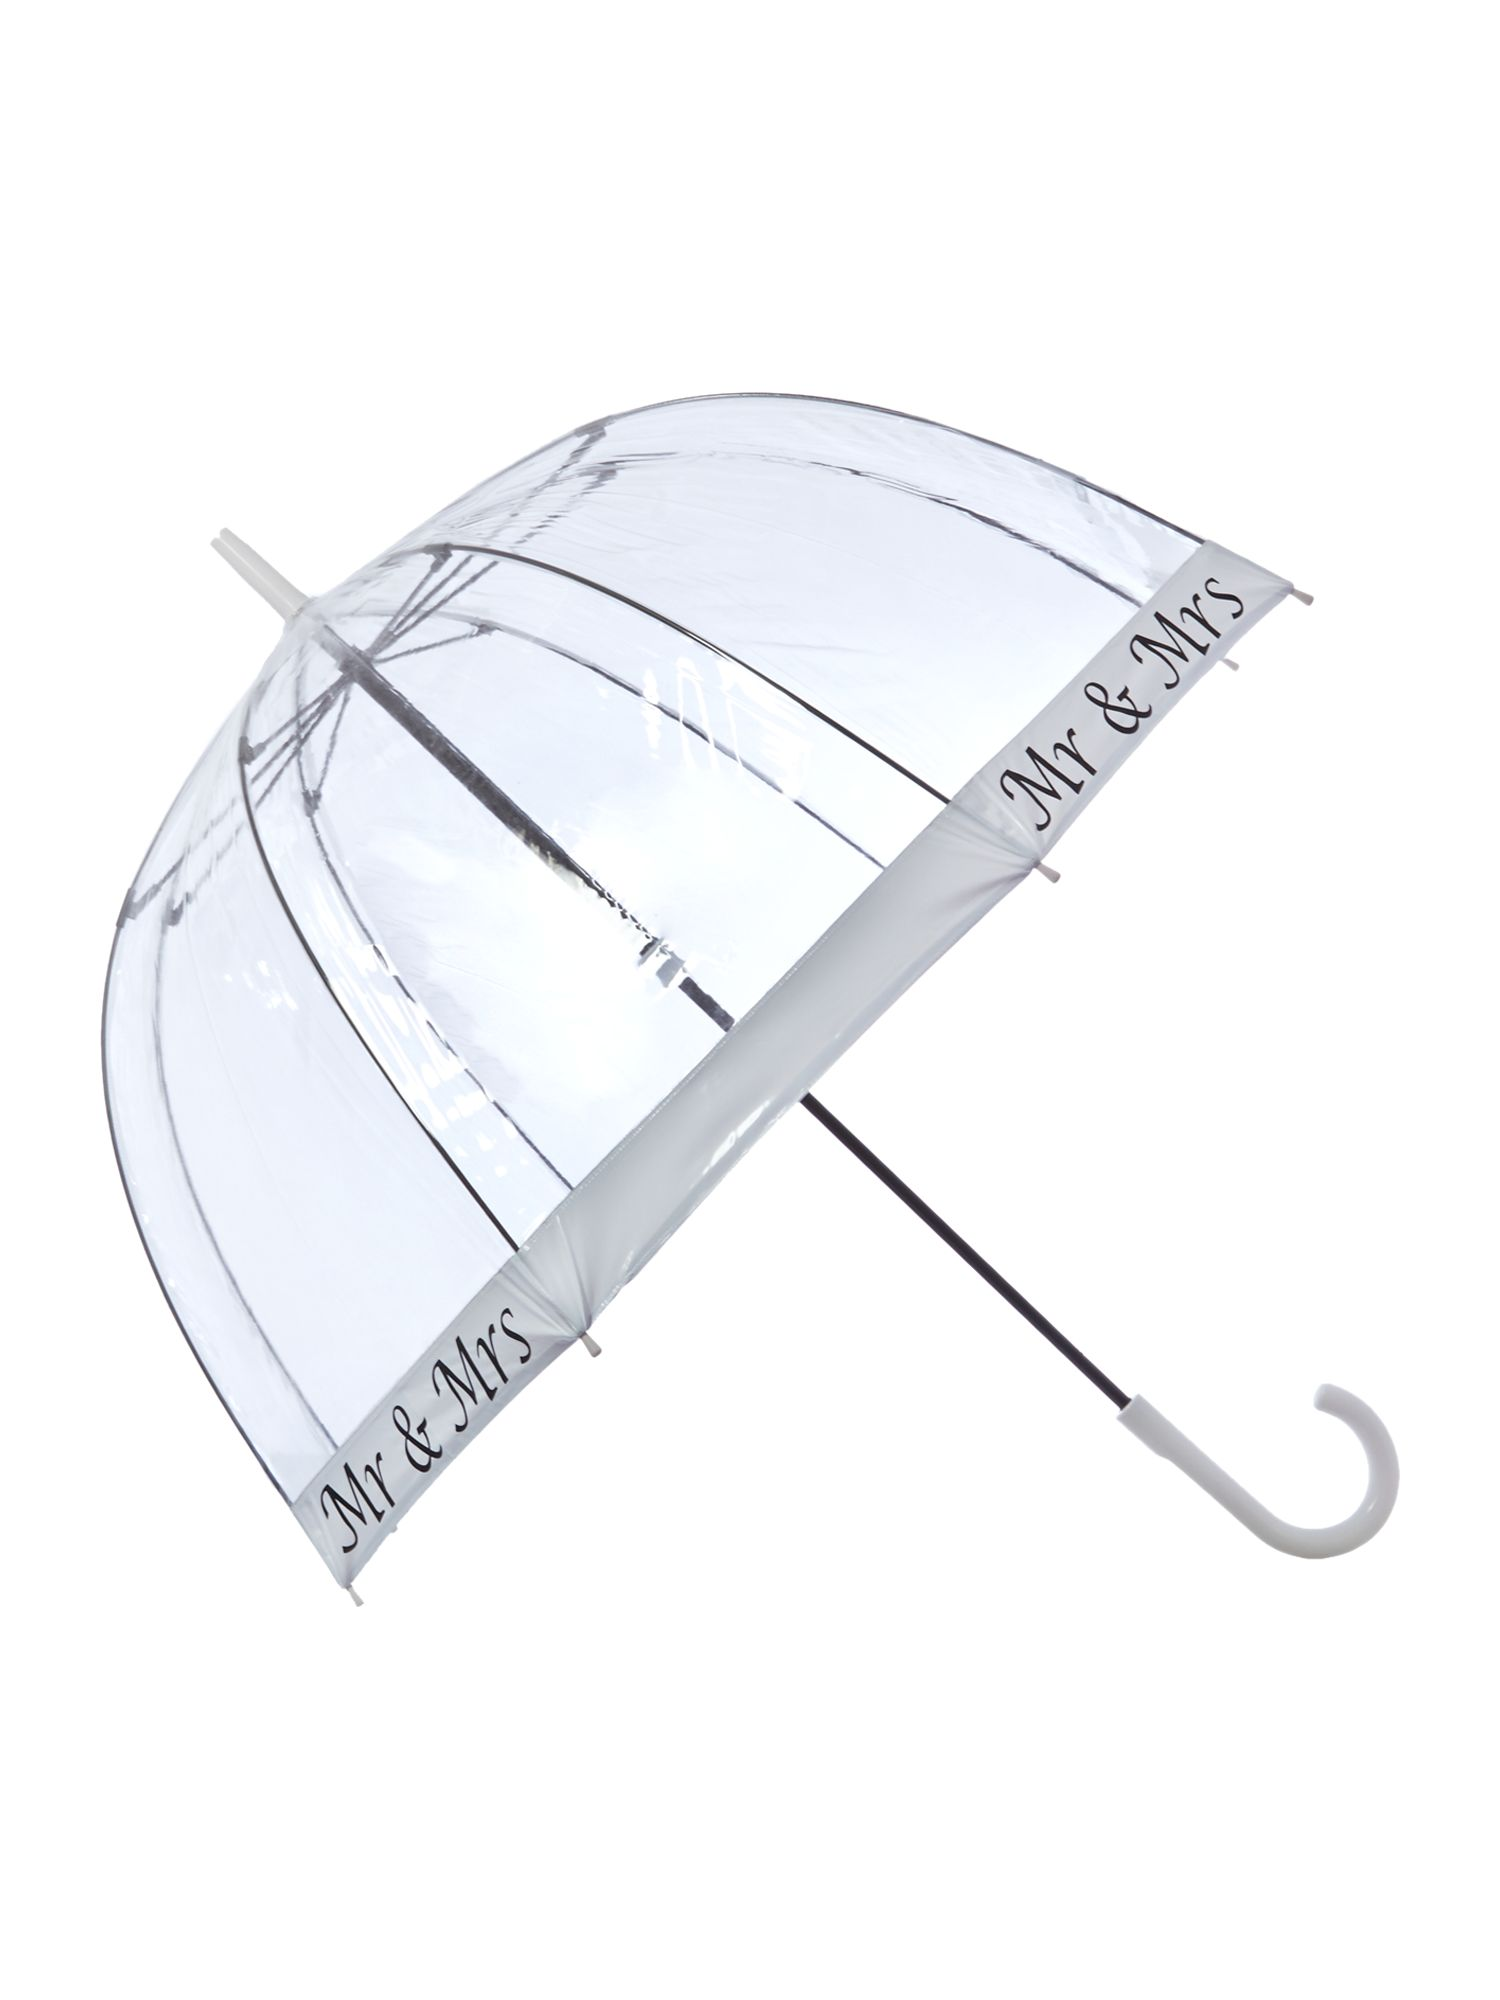 Mr and Mrs birdcage umbrella